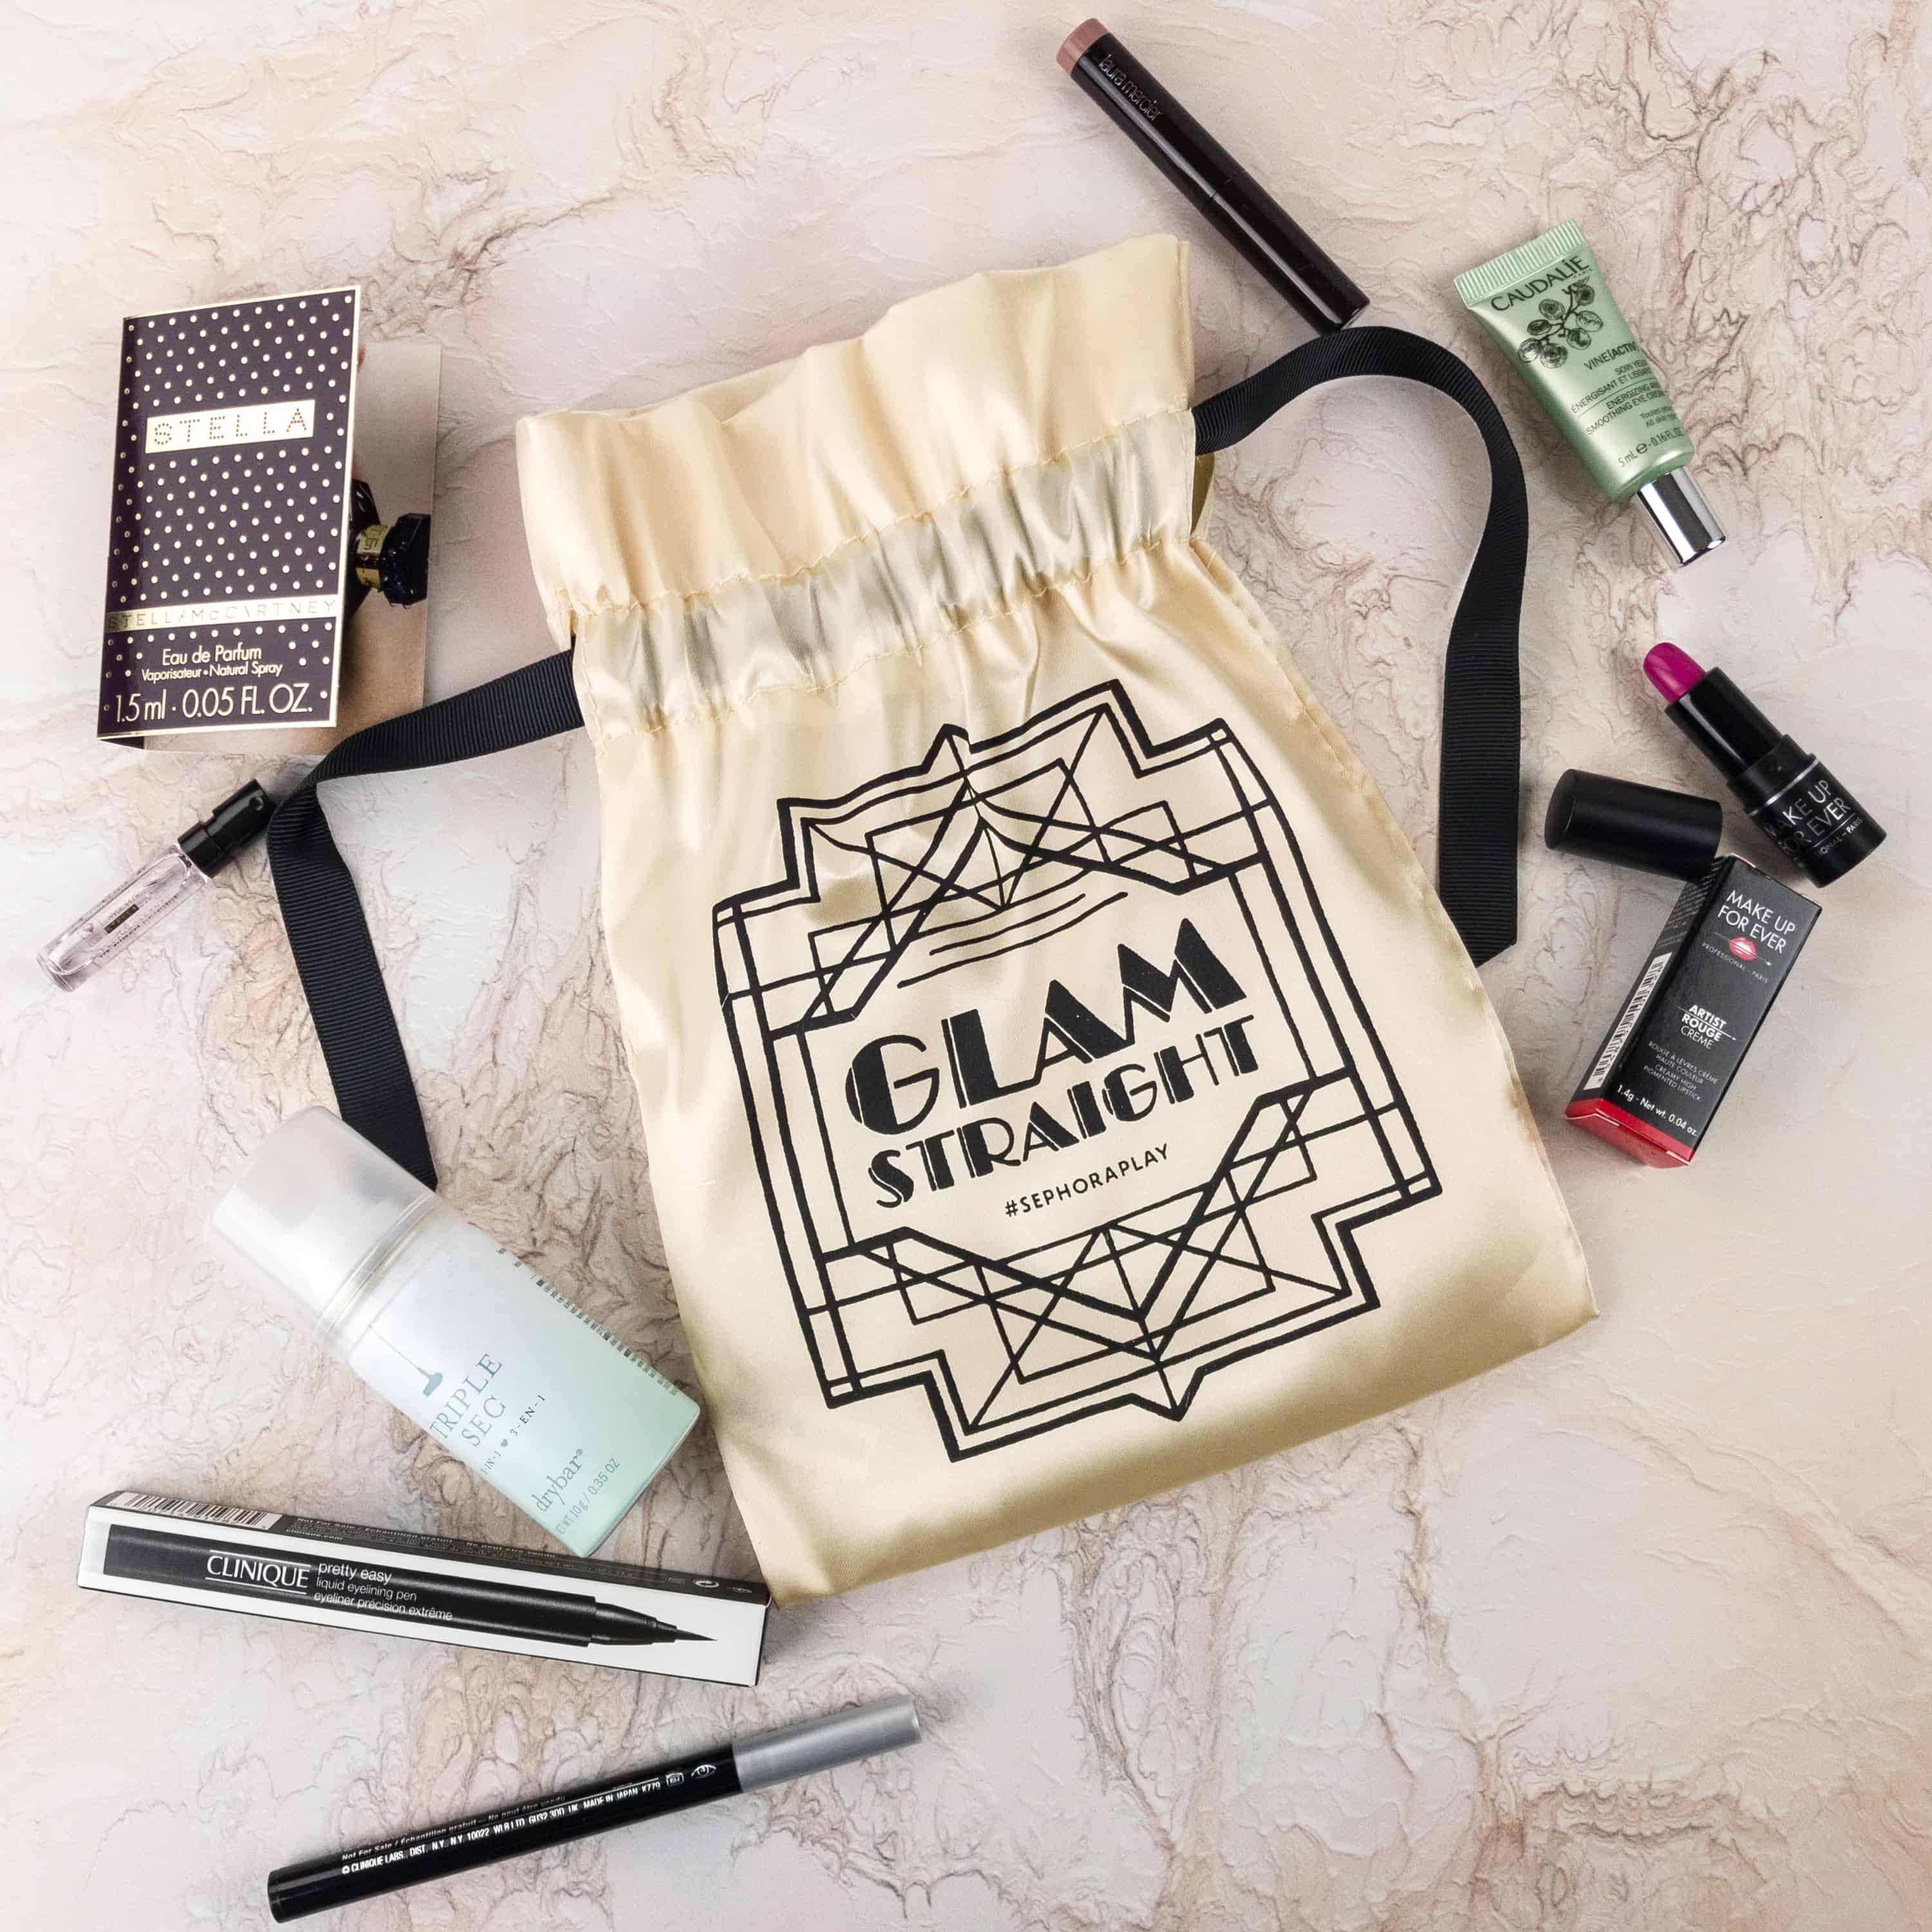 Play! by Sephora December 2017 Subscription Box Review